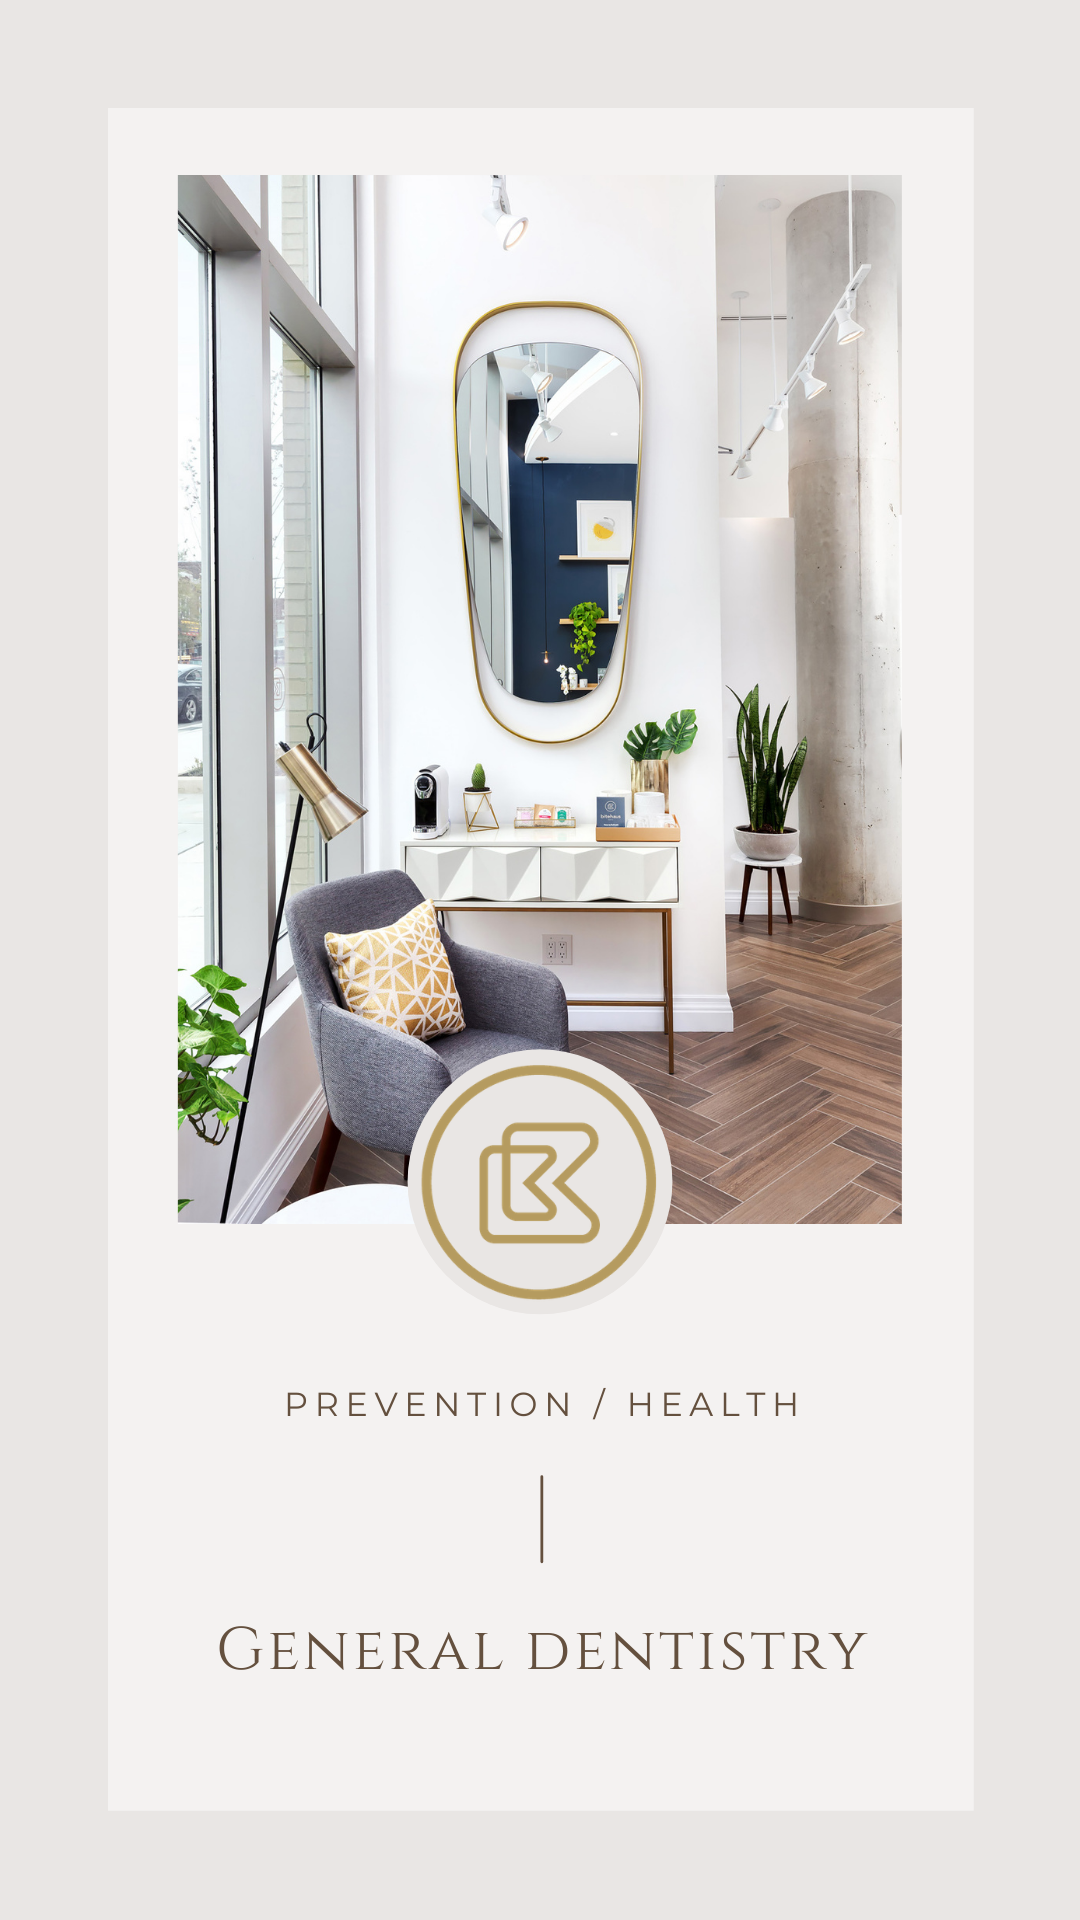 Our comprehensive prevention programme includes digital images, tooth wear time-lapse scans, low-radiation digital x-rays, diet advice, hygiene, sleep apnea and oral cancer screenings | Bitehaus Toronto Dental Clinic